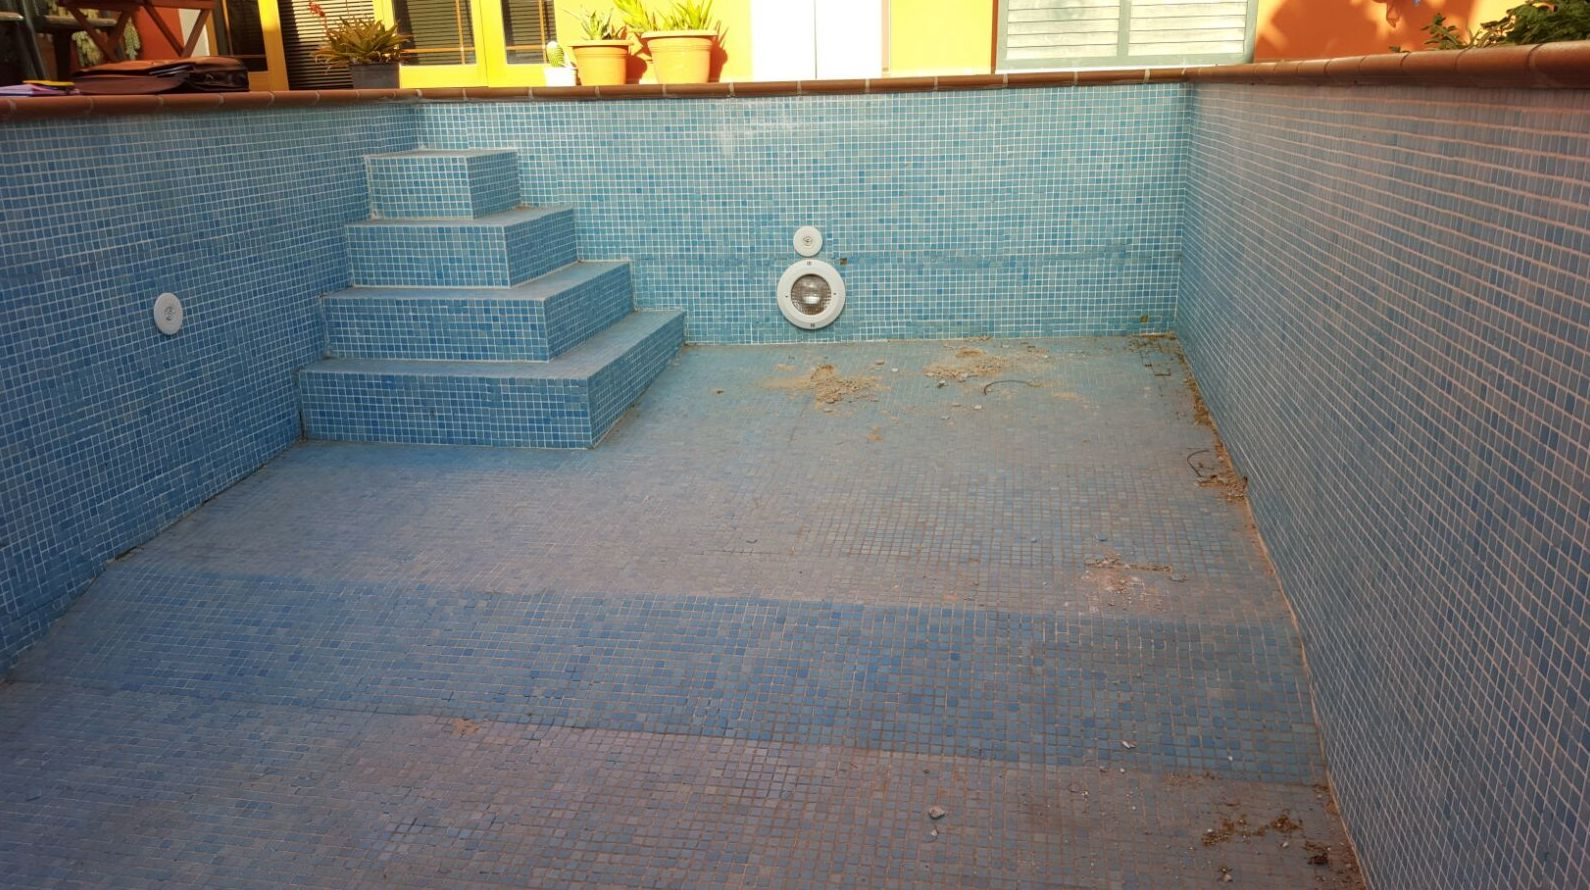 Piscina con desperfectos